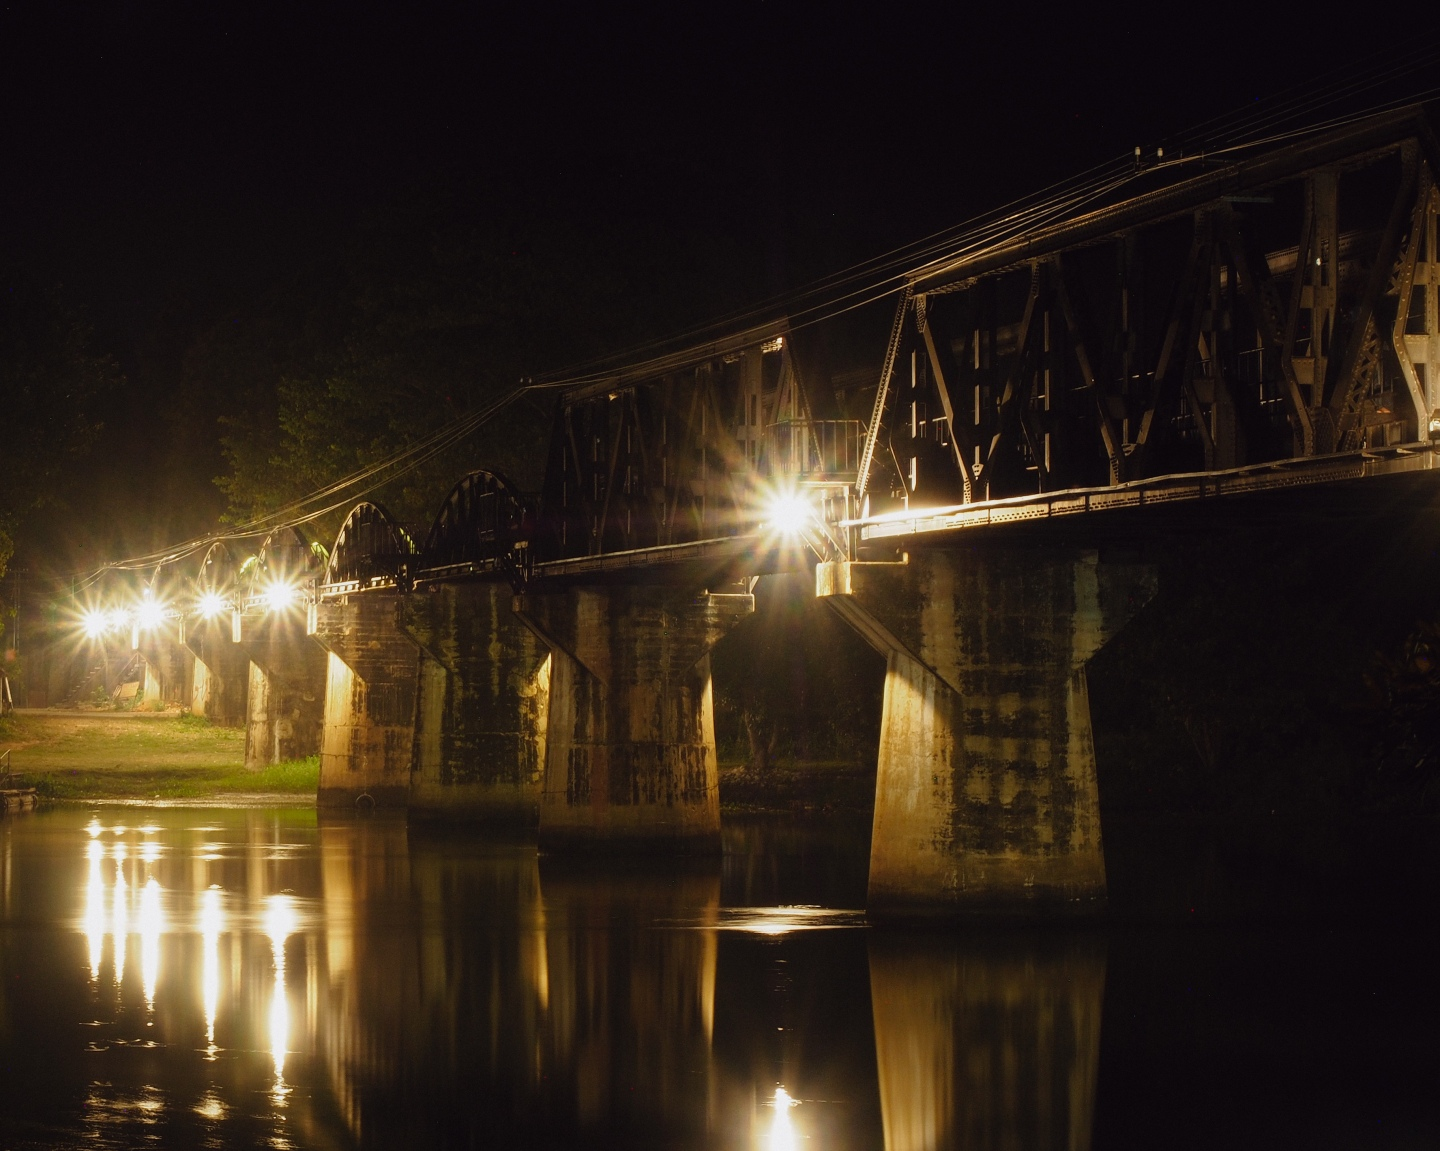 Bridge over the River Kwai illuminated at night